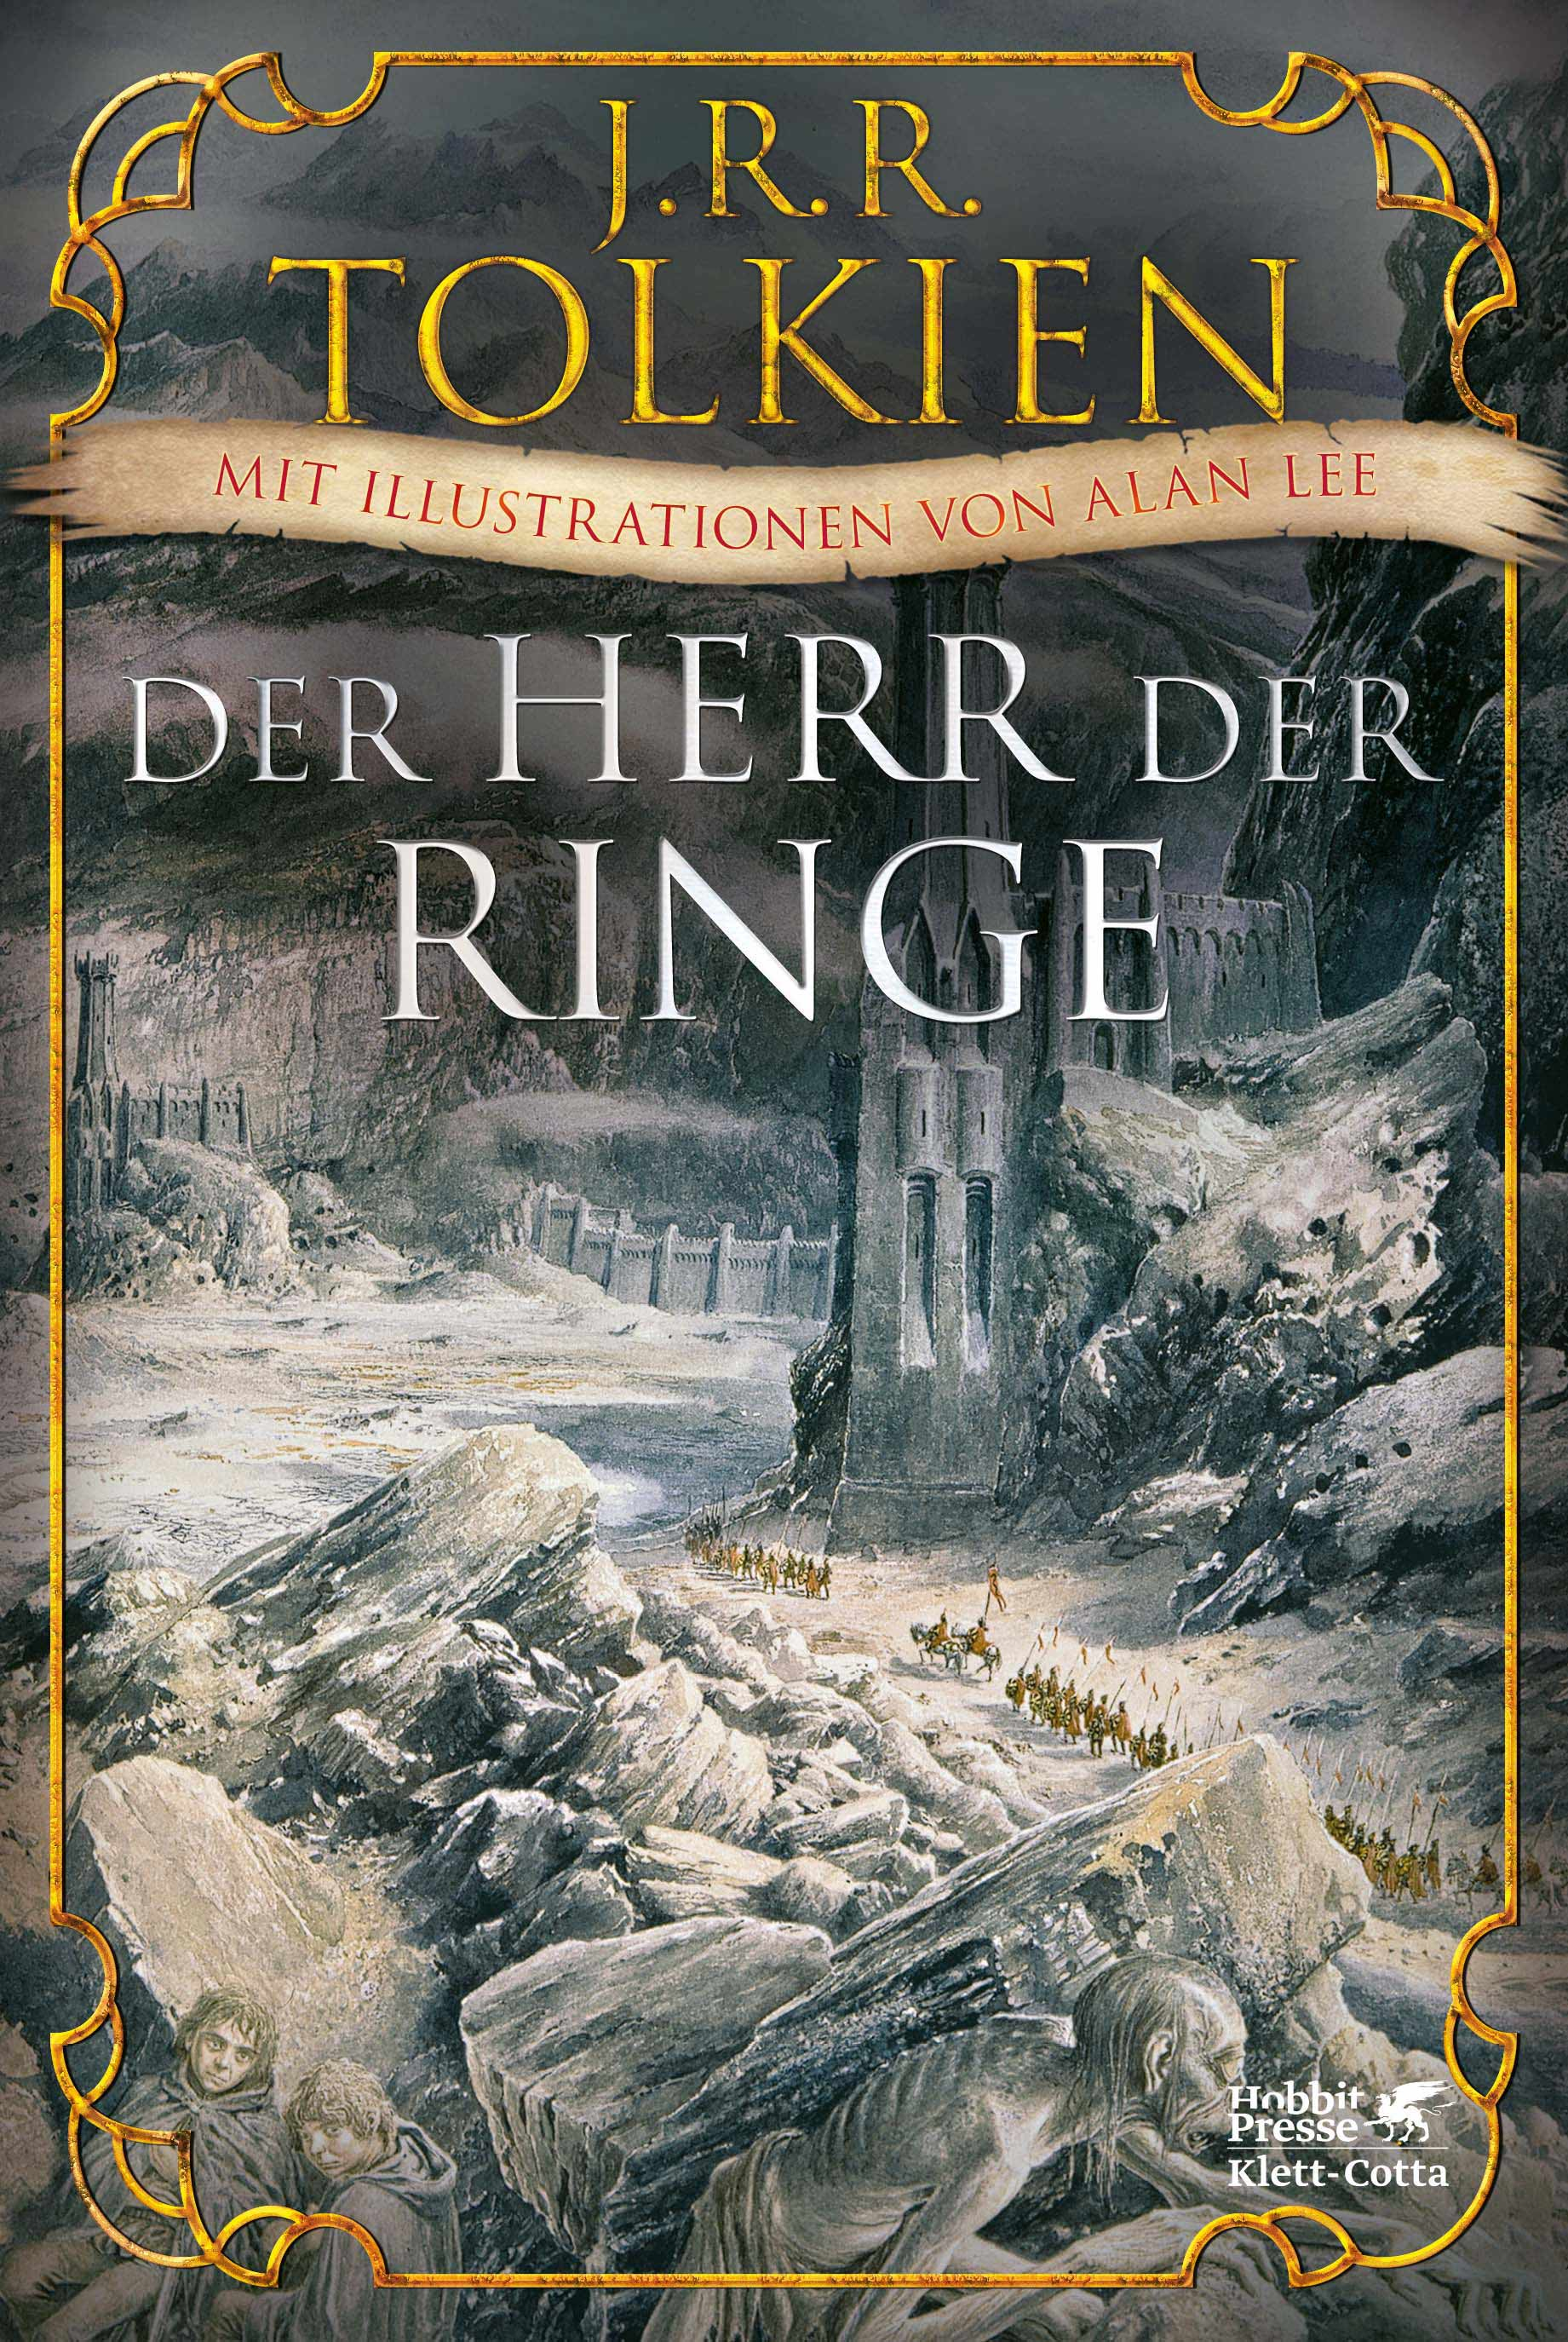 klett cotta der herr der ringe j r r tolkien. Black Bedroom Furniture Sets. Home Design Ideas